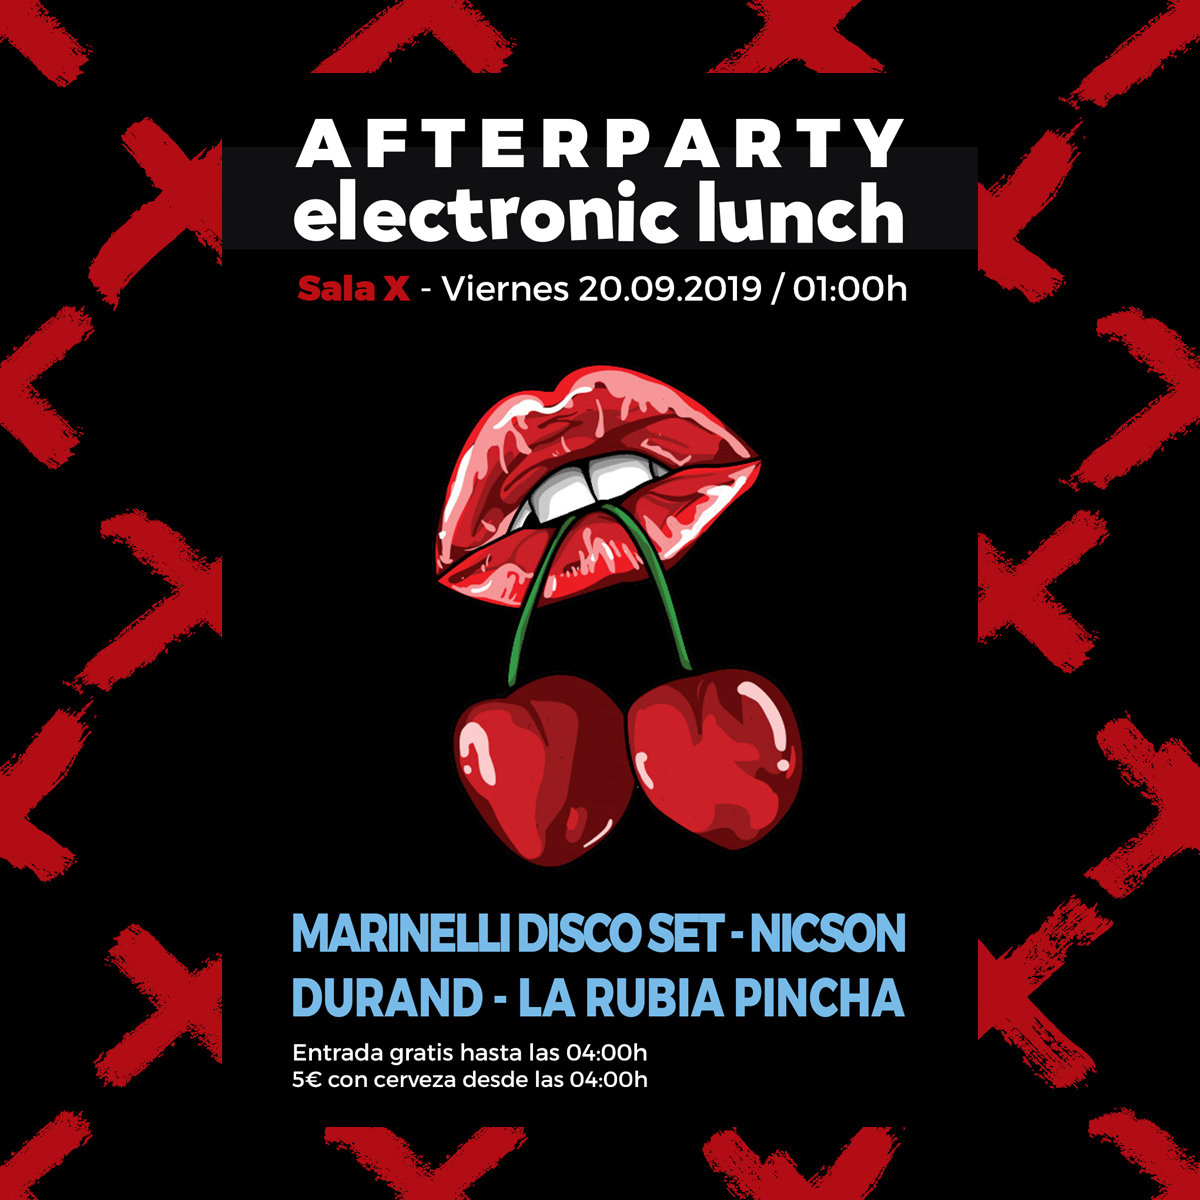 AFTERPARTY ELECTRONIC LUNCH CARDINI INSTAGRAM